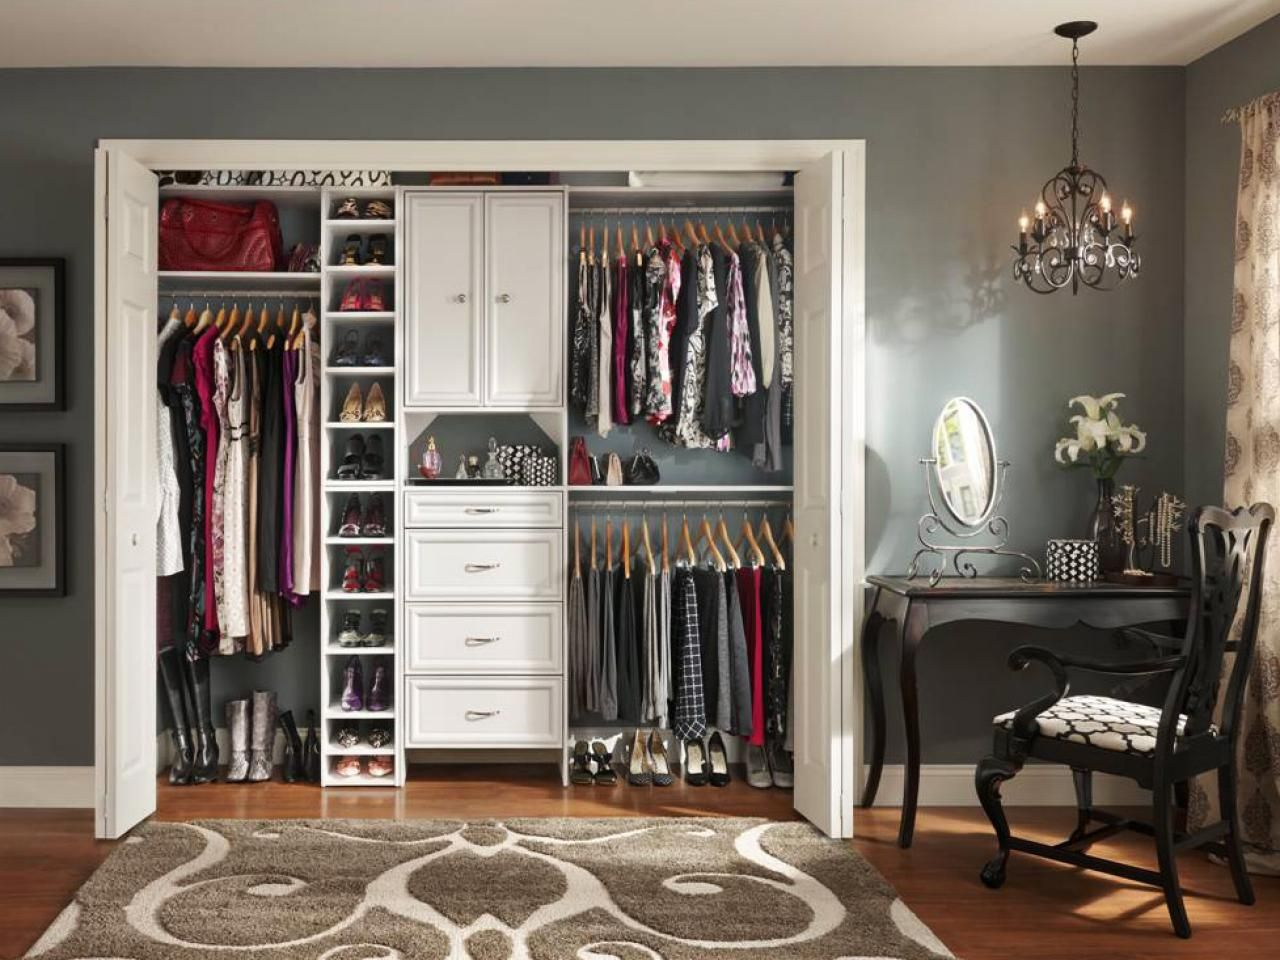 Superb Small Closet Organization Ideas: Pictures, Options U0026 Tips | Home Remodeling    Ideas For